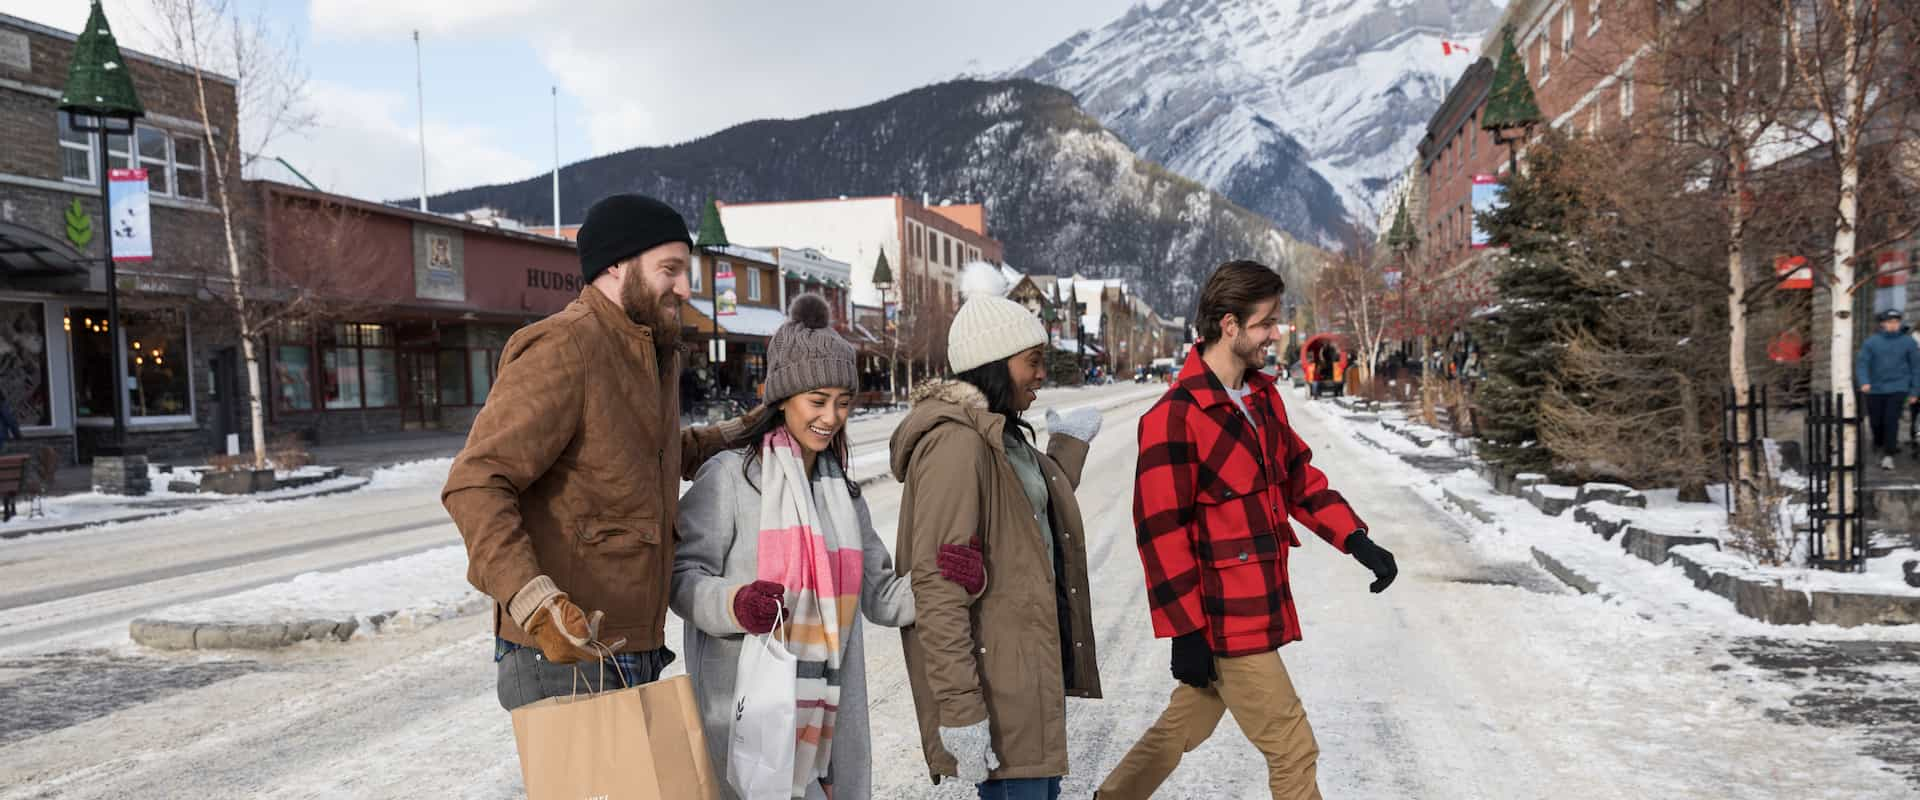 Explore downtown Banff on a shopping trip with friends